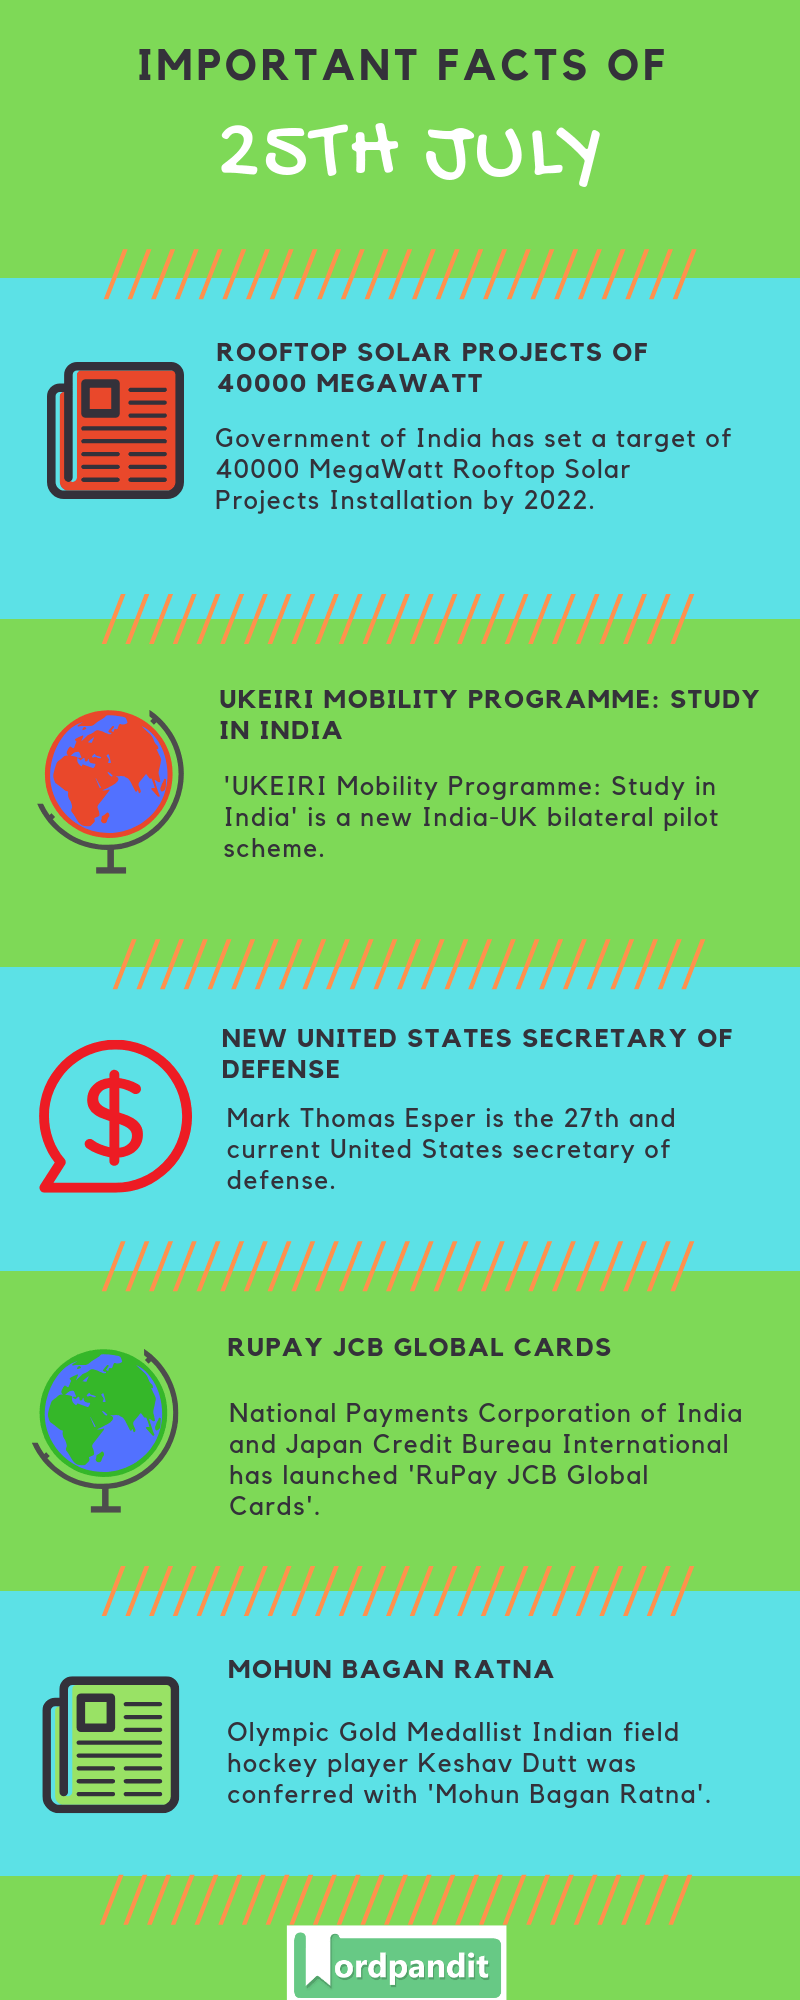 Daily Current Affairs 25 July 2019 Current Affairs Quiz 25 July 2019 Current Affairs Infographic